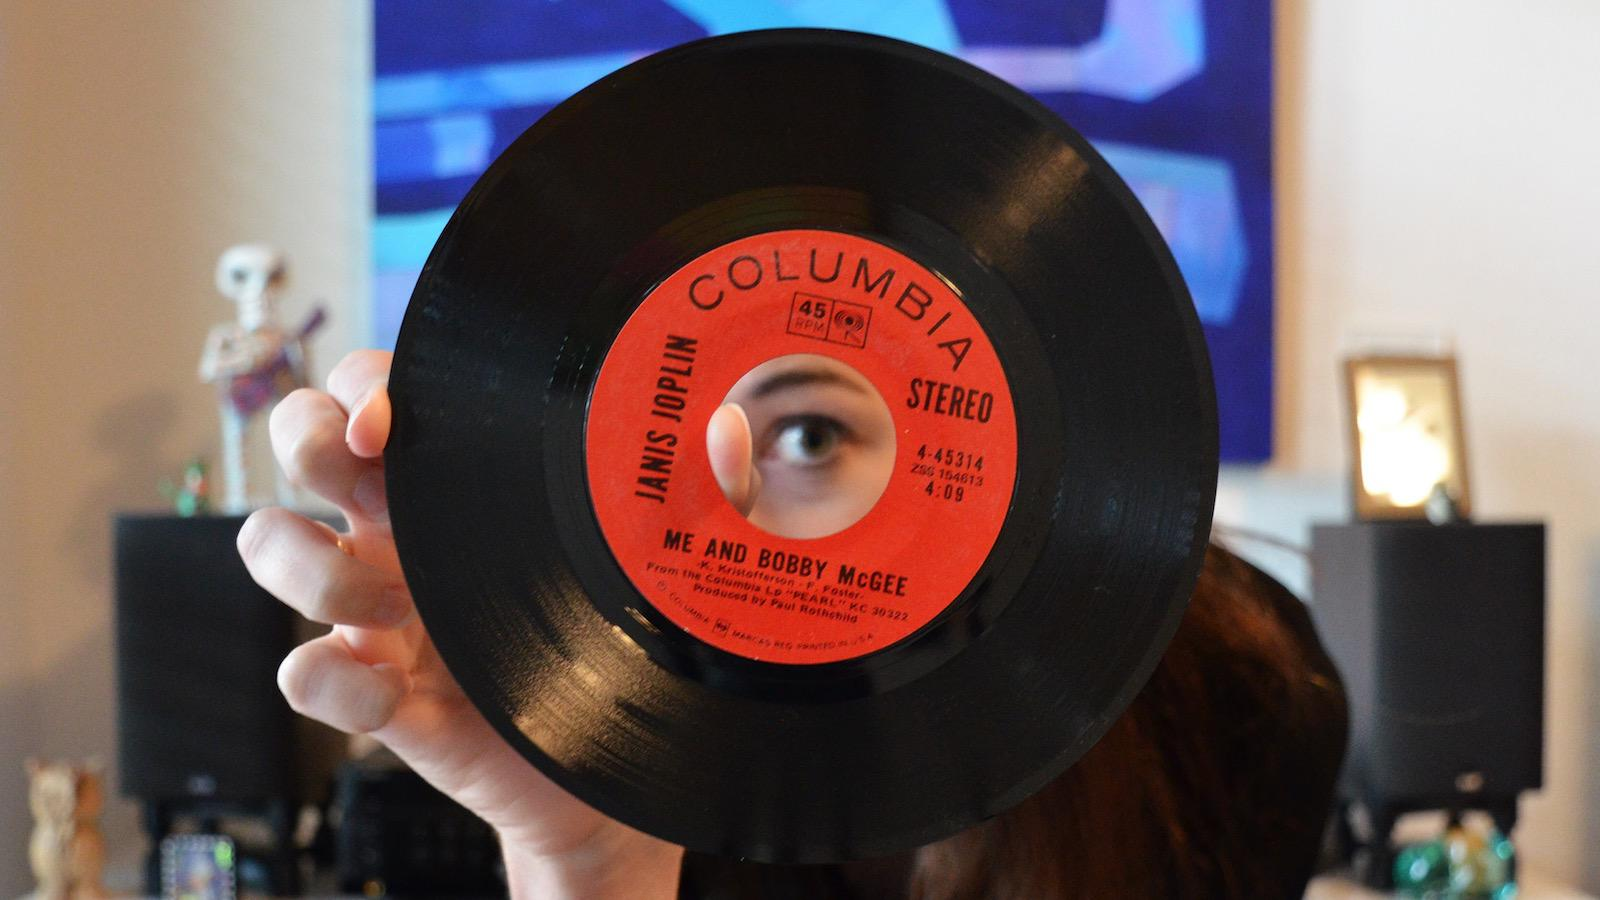 Lauren Halliday Behind Bobby McGee 45 RPM Record